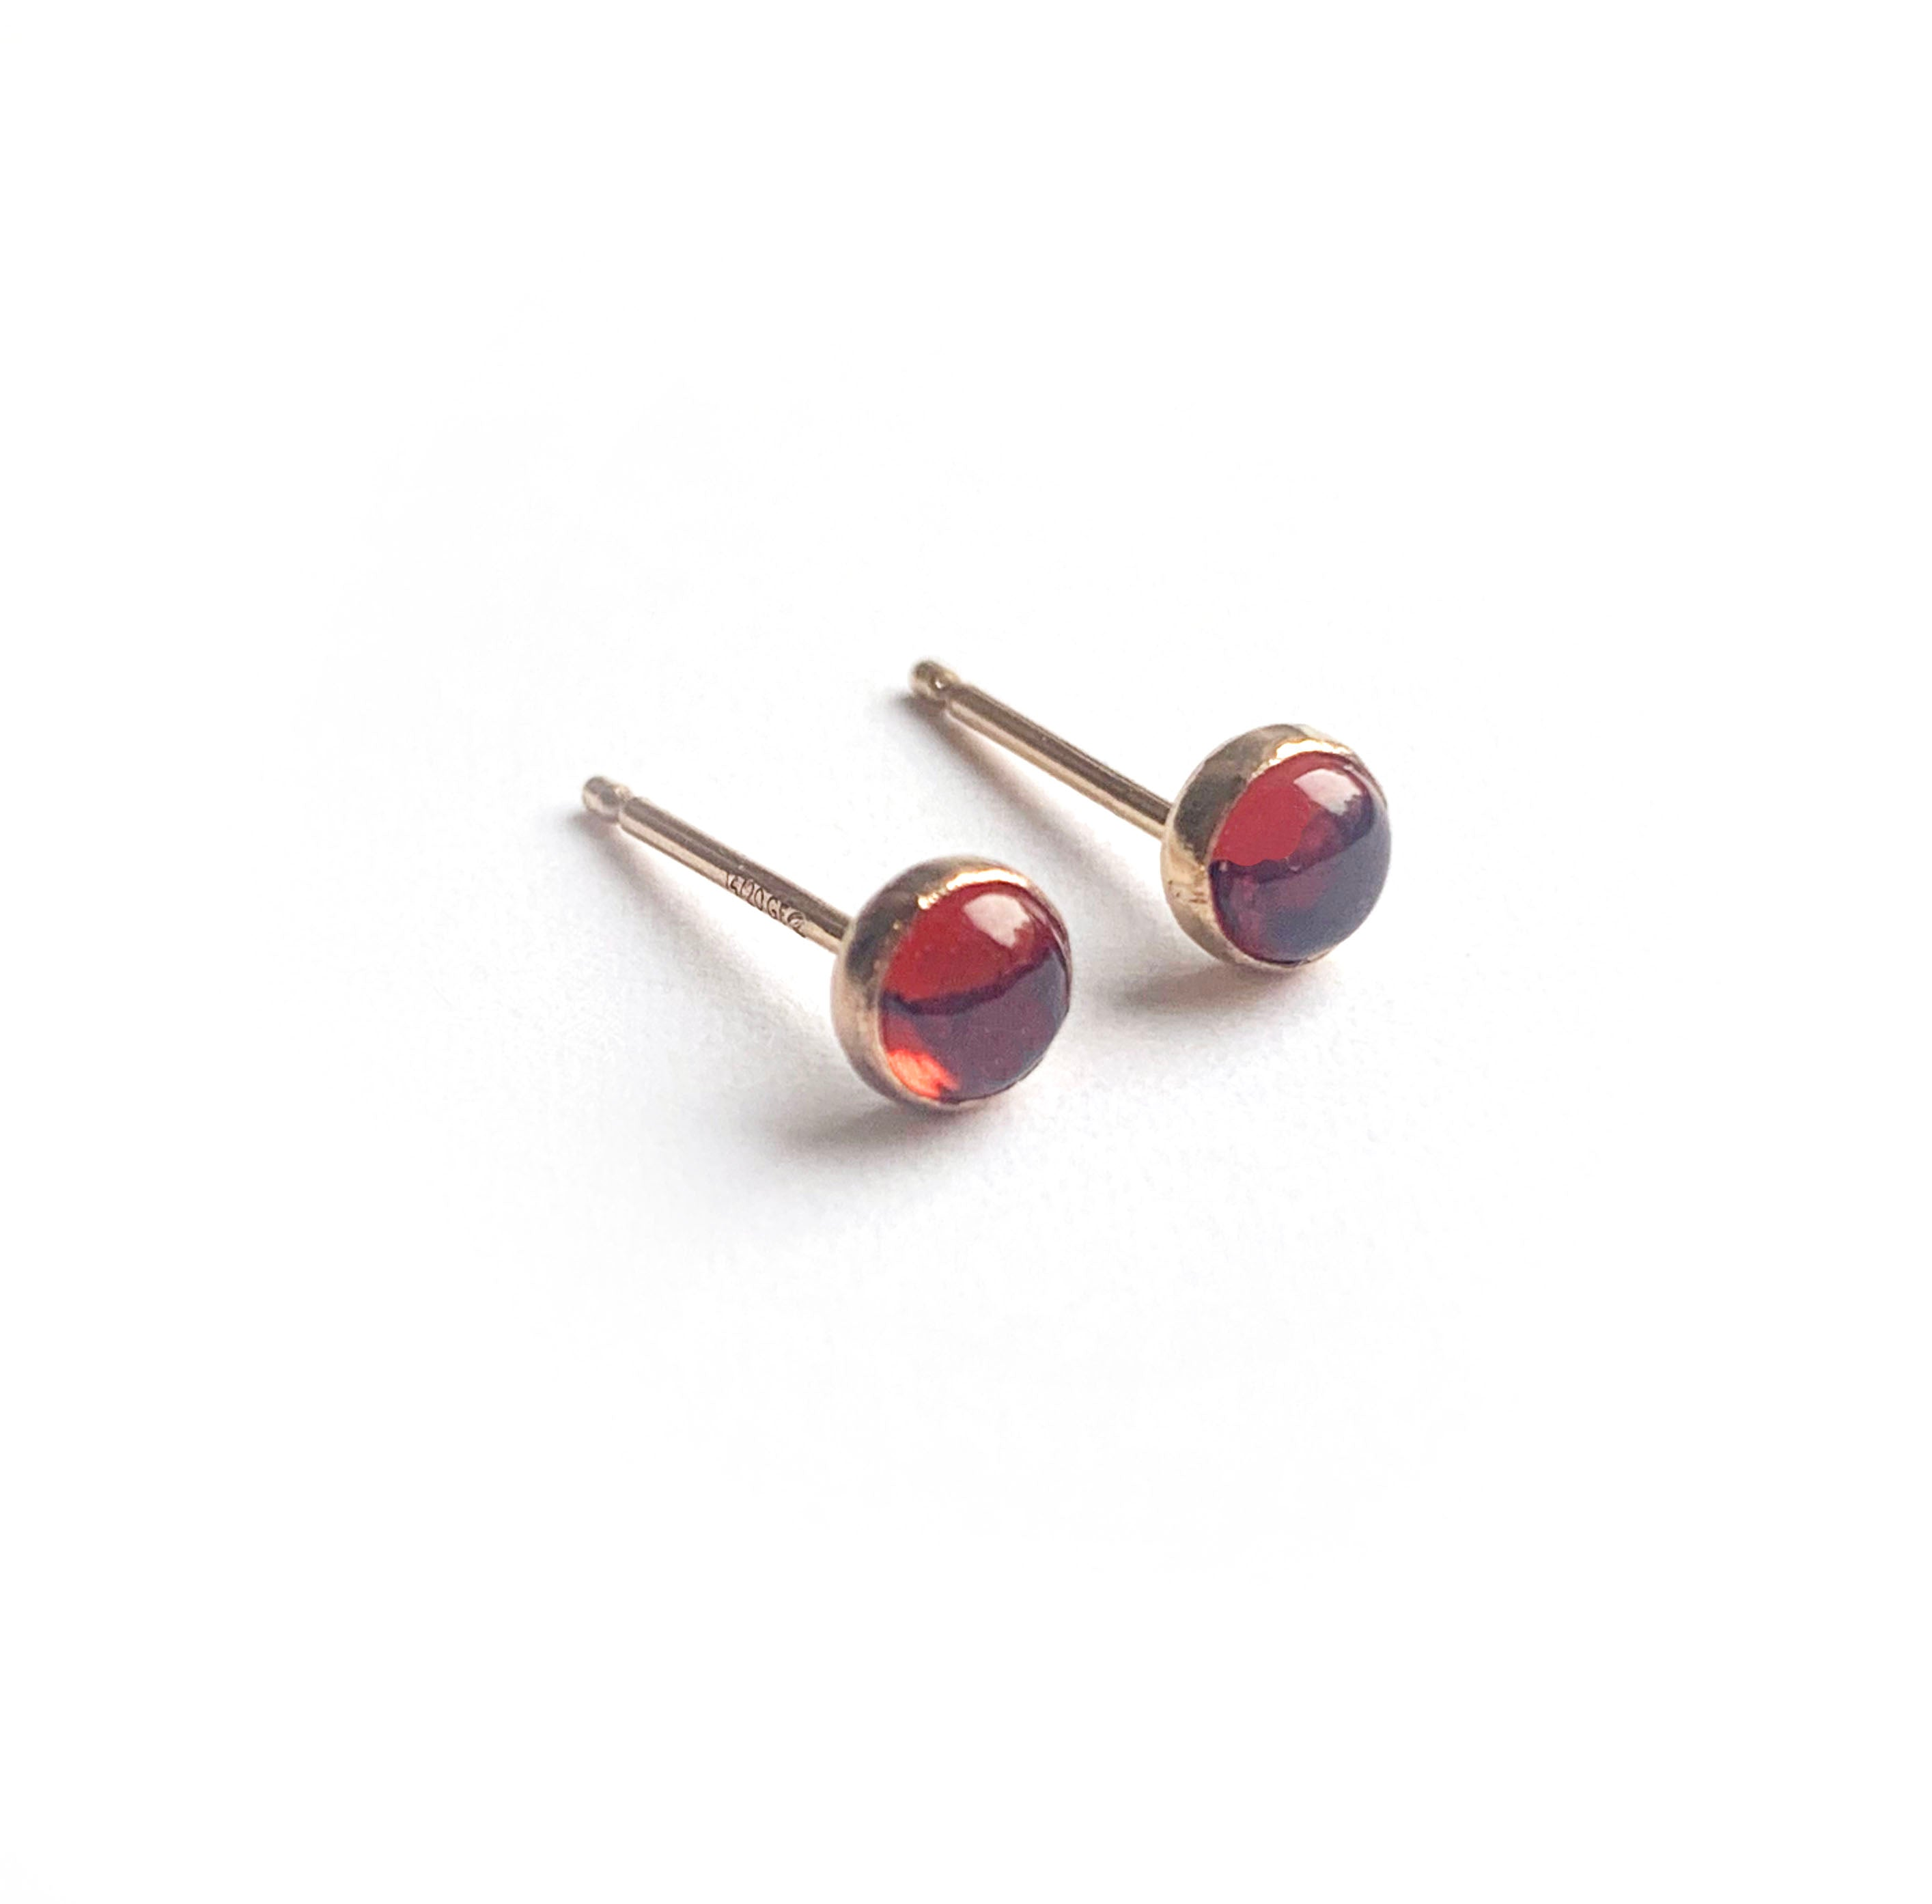 Tiny Gemstone Earrings - 14K Gold Filled + Garnet